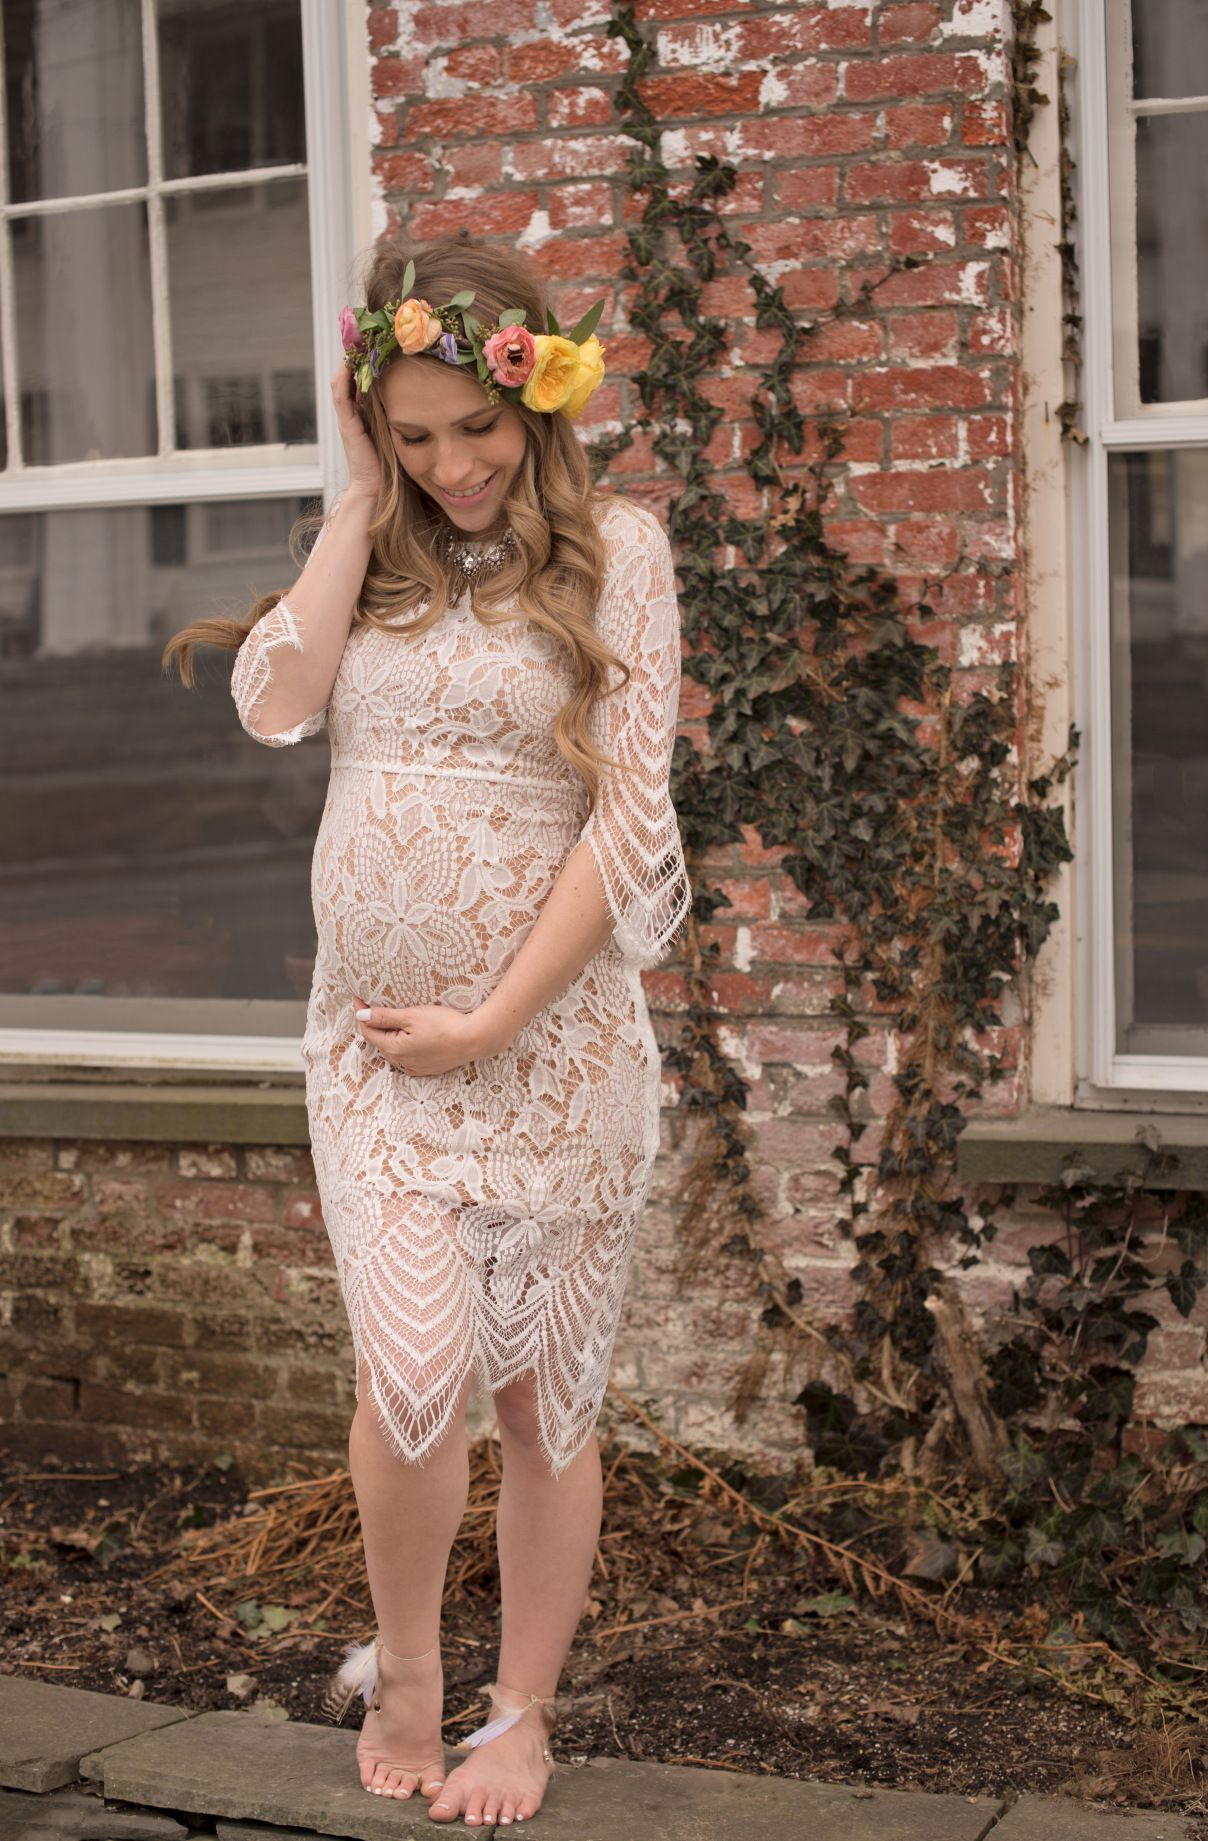 Full Size of Baby Shower:alluring Baby Shower Dresses Baby Shower Dresses Cute Inexpensive Maternity Clothes Maternity Evening Gowns Plus Size Maternity Dresses For Baby Shower